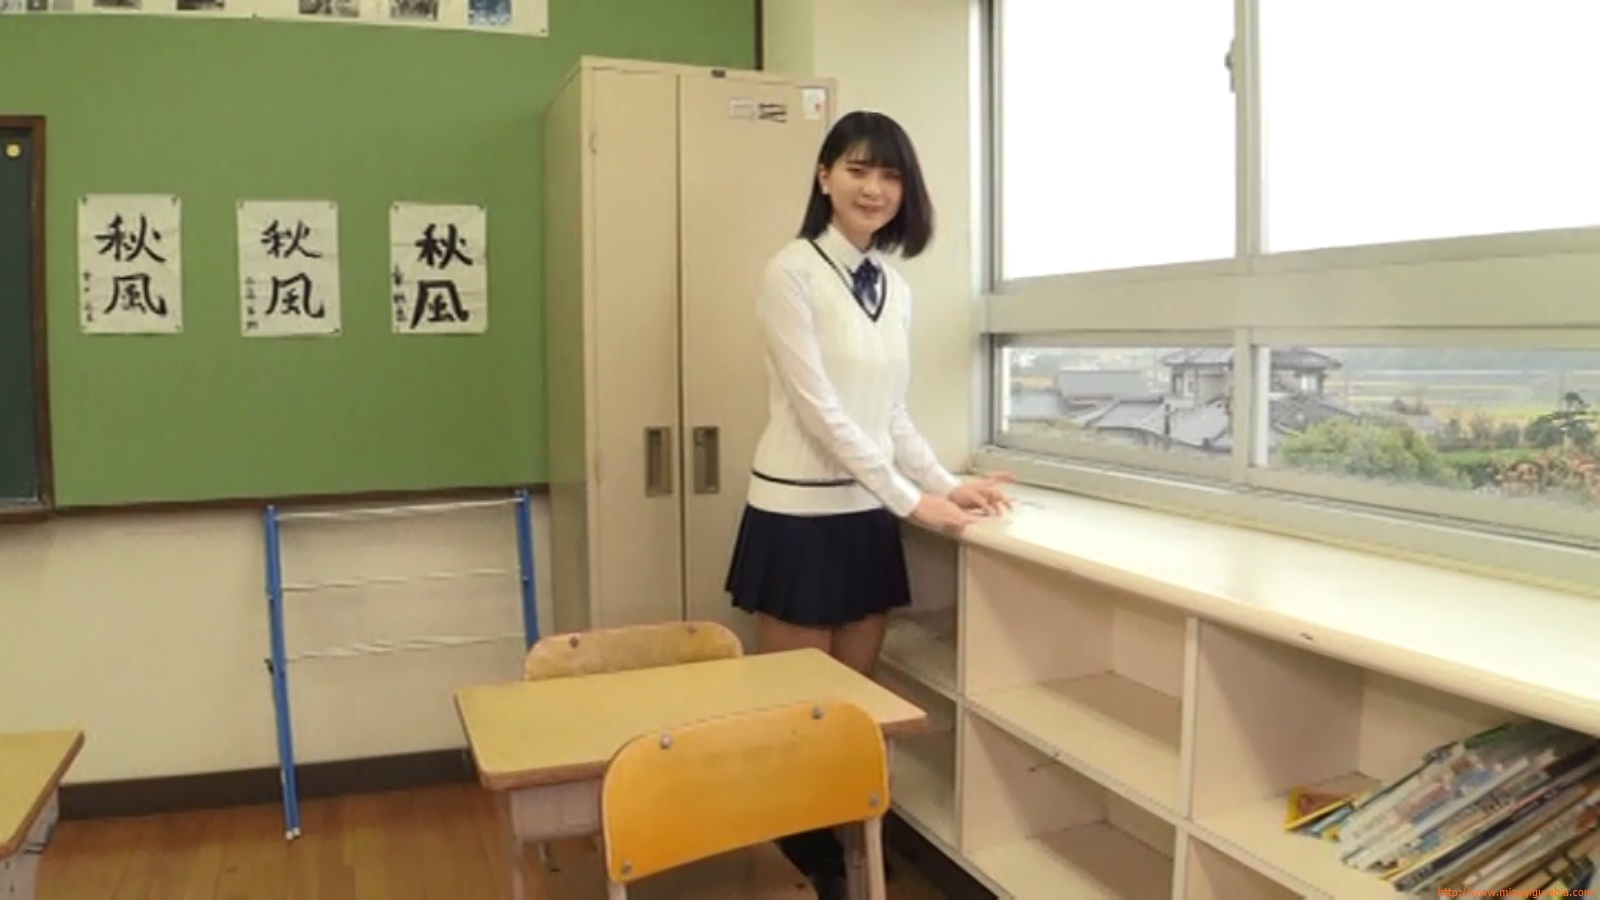 Two-person classroom142